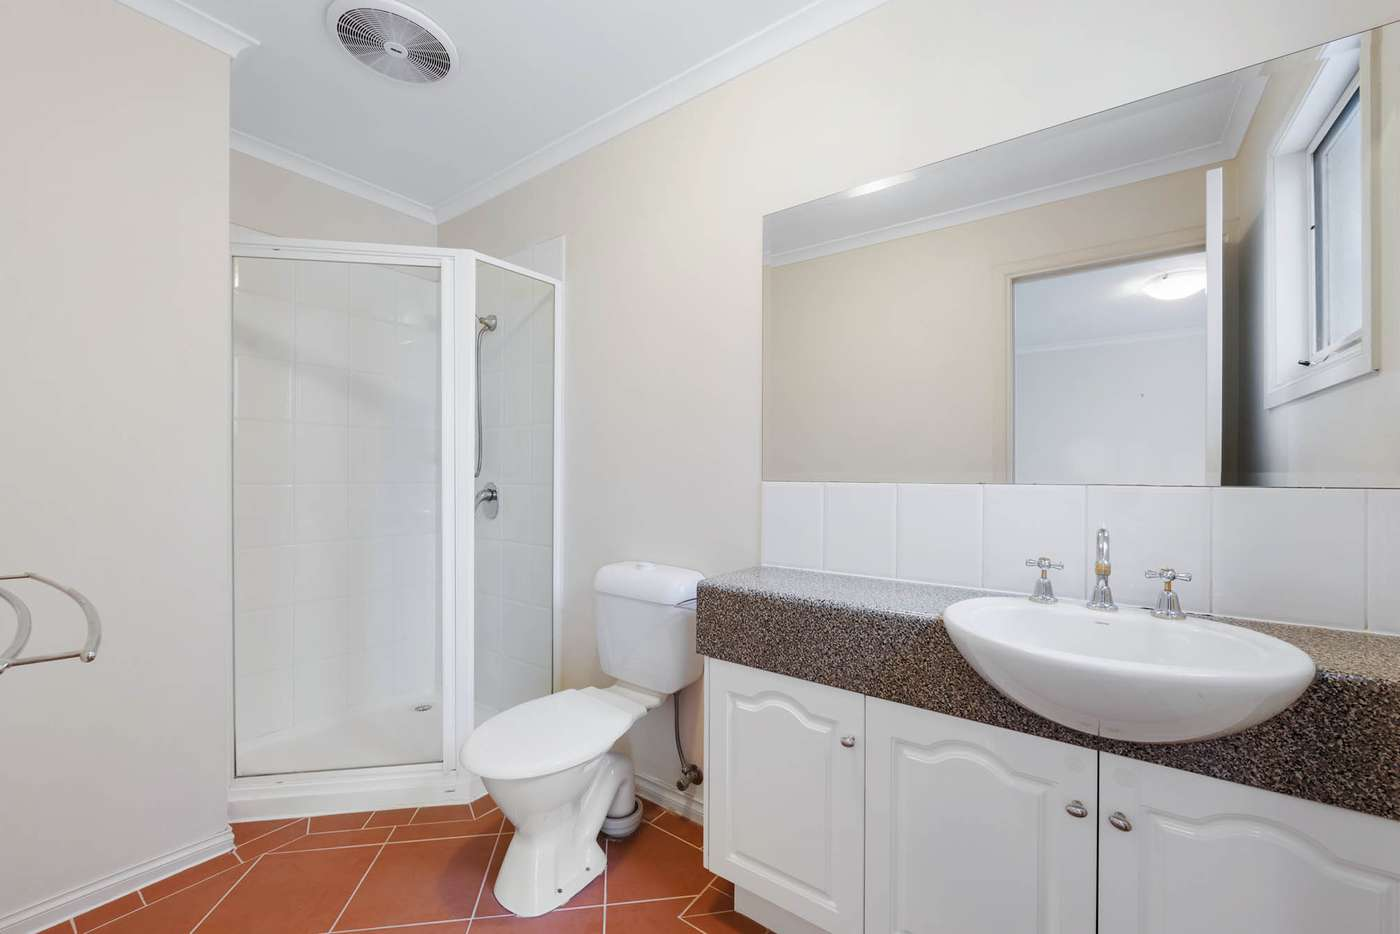 Seventh view of Homely townhouse listing, 1/483 St Kilda Street, Elwood VIC 3184